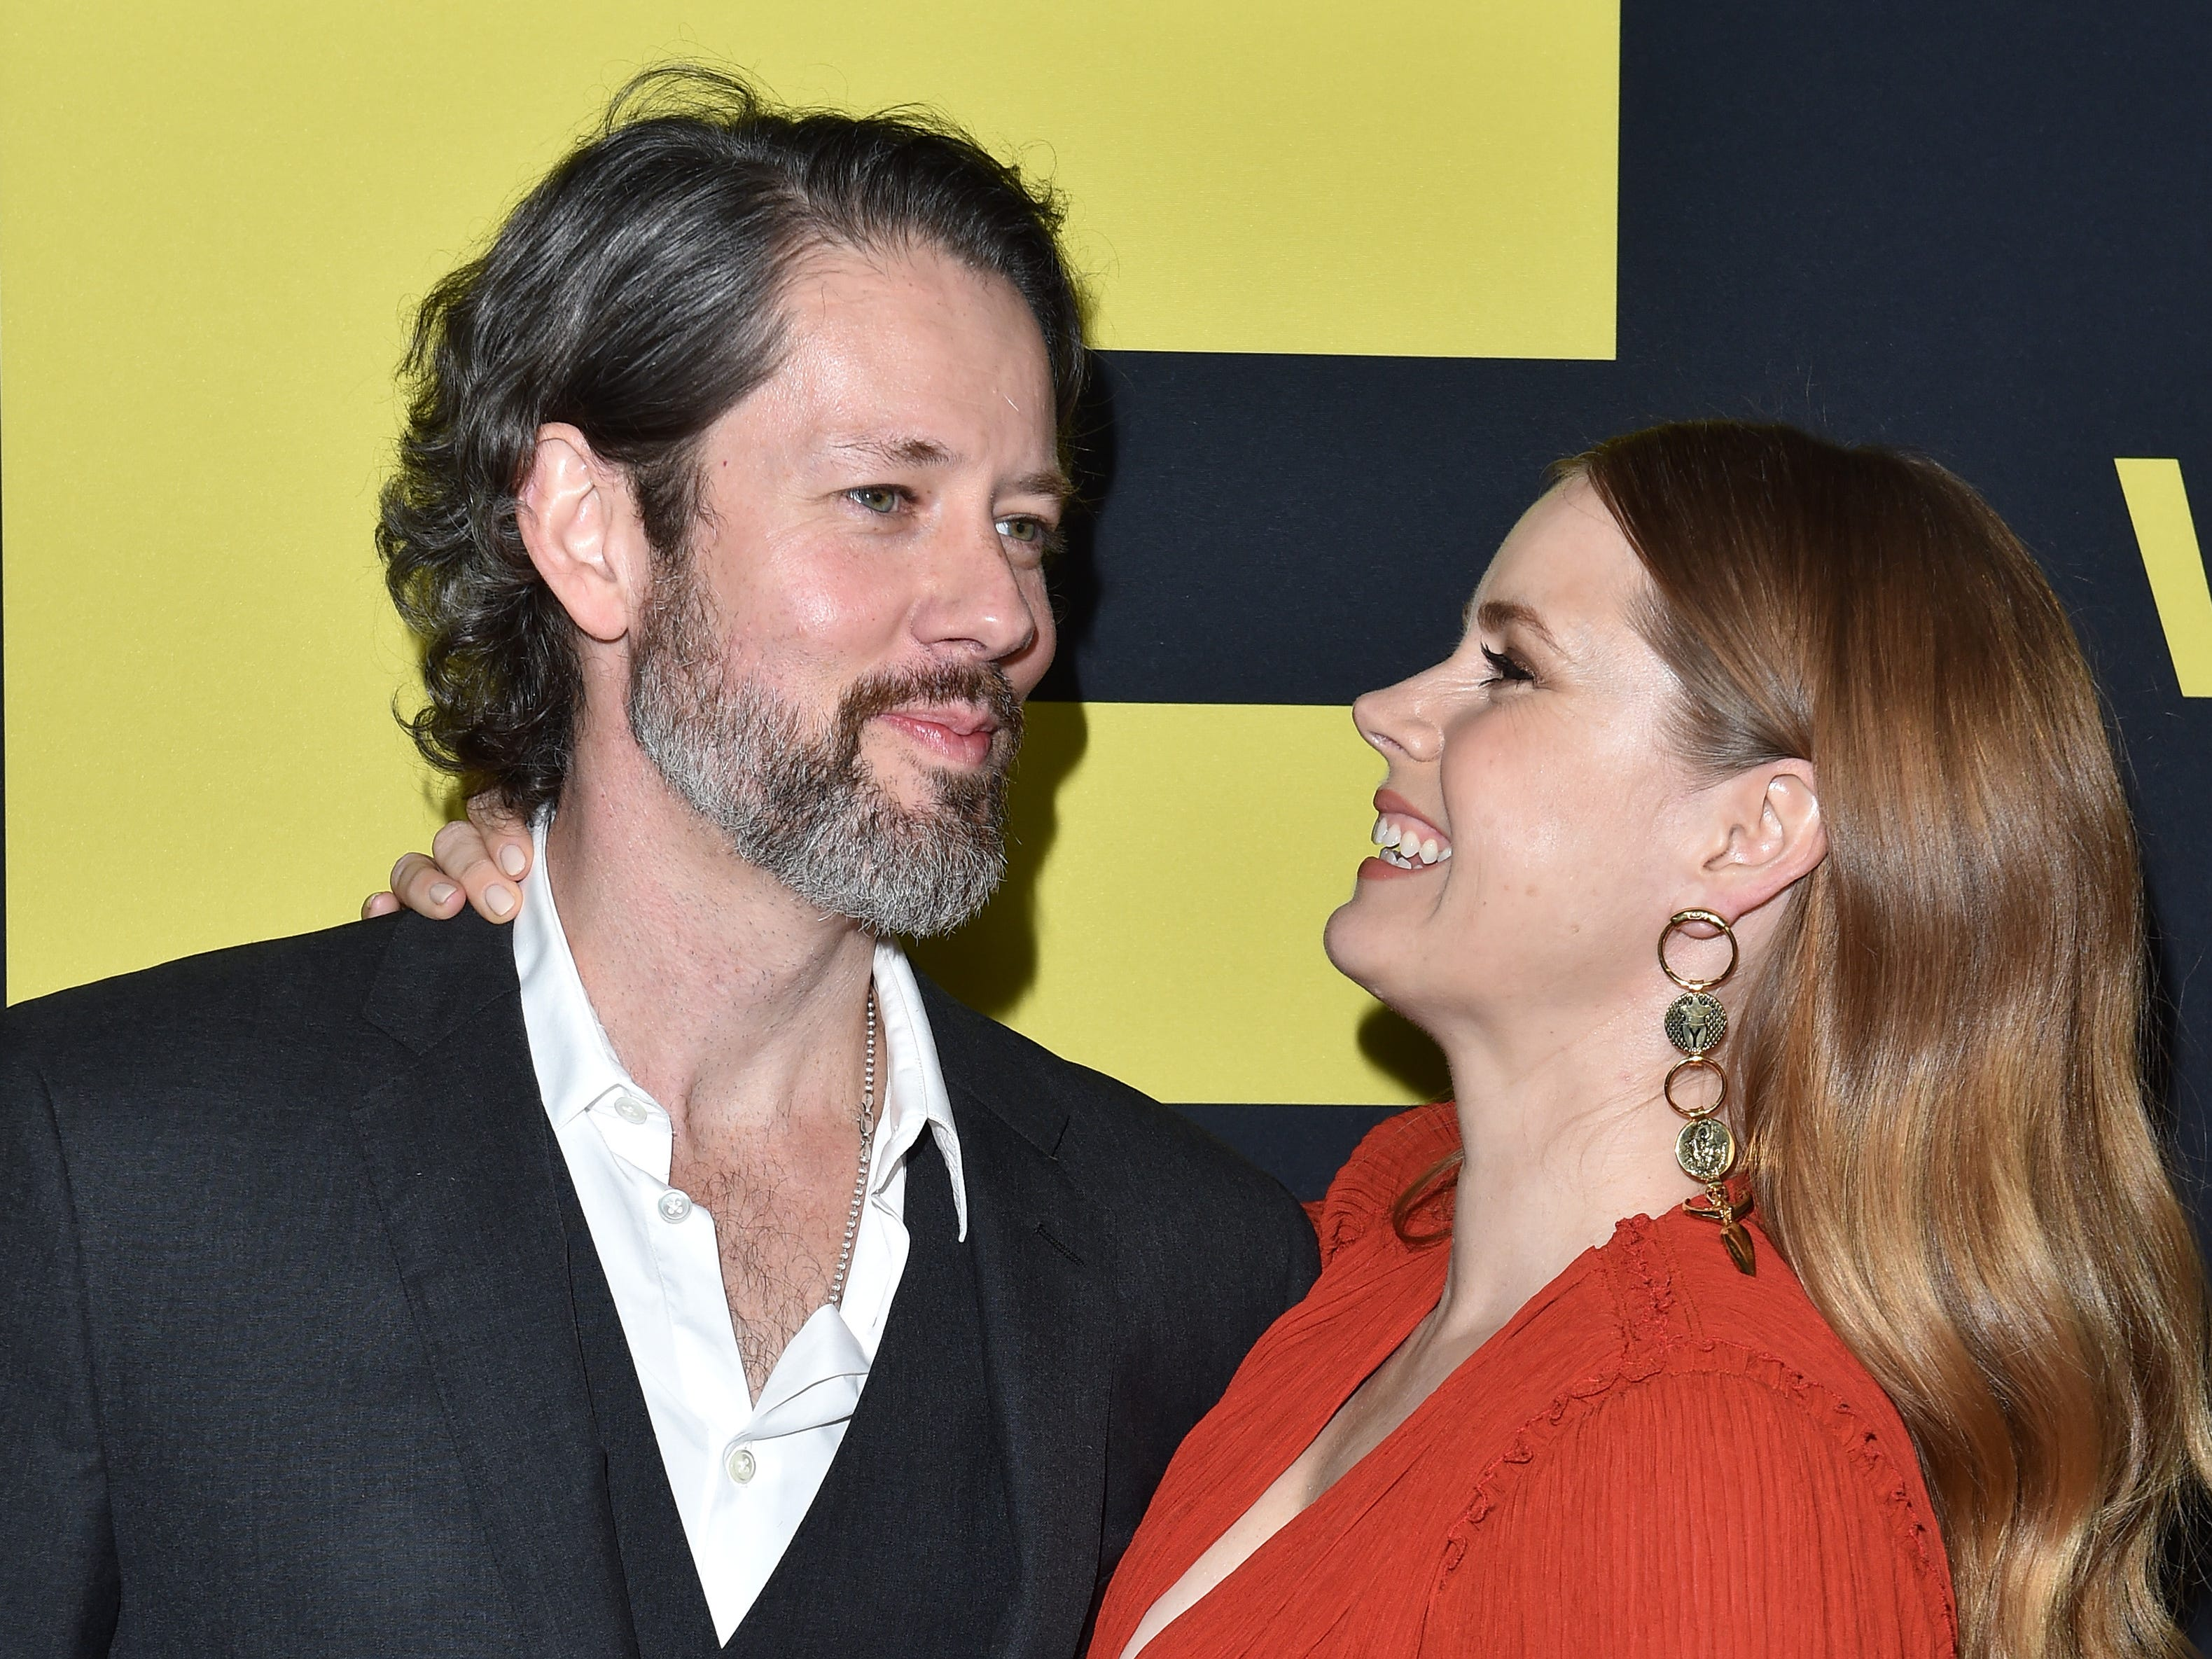 BEVERLY HILLS, CA - DECEMBER 11:  Darren Le Gallo and Amy Adams attend Annapurna Pictures, Gary Sanchez Productions and Plan B Entertainment's World Premiere of 'Vice' at AMPAS Samuel Goldwyn Theater on December 11, 2018 in Beverly Hills, California.  (Photo by Axelle/Bauer-Griffin/FilmMagic) ORG XMIT: 775265234 ORIG FILE ID: 1071952614